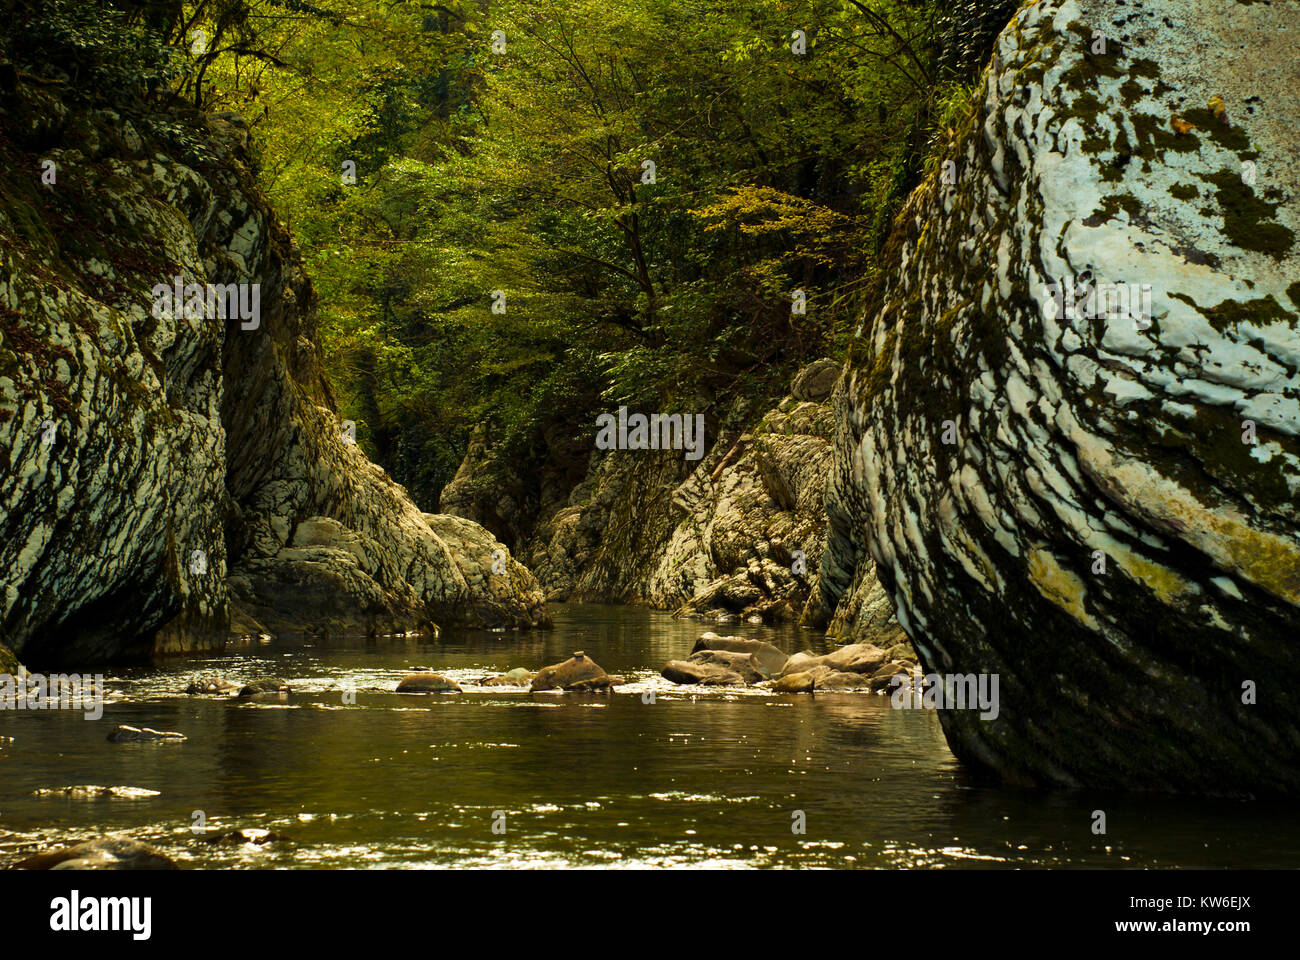 beautiful shady river gorge in a mountain forest with green gleams from the water on the rocks - Stock Image